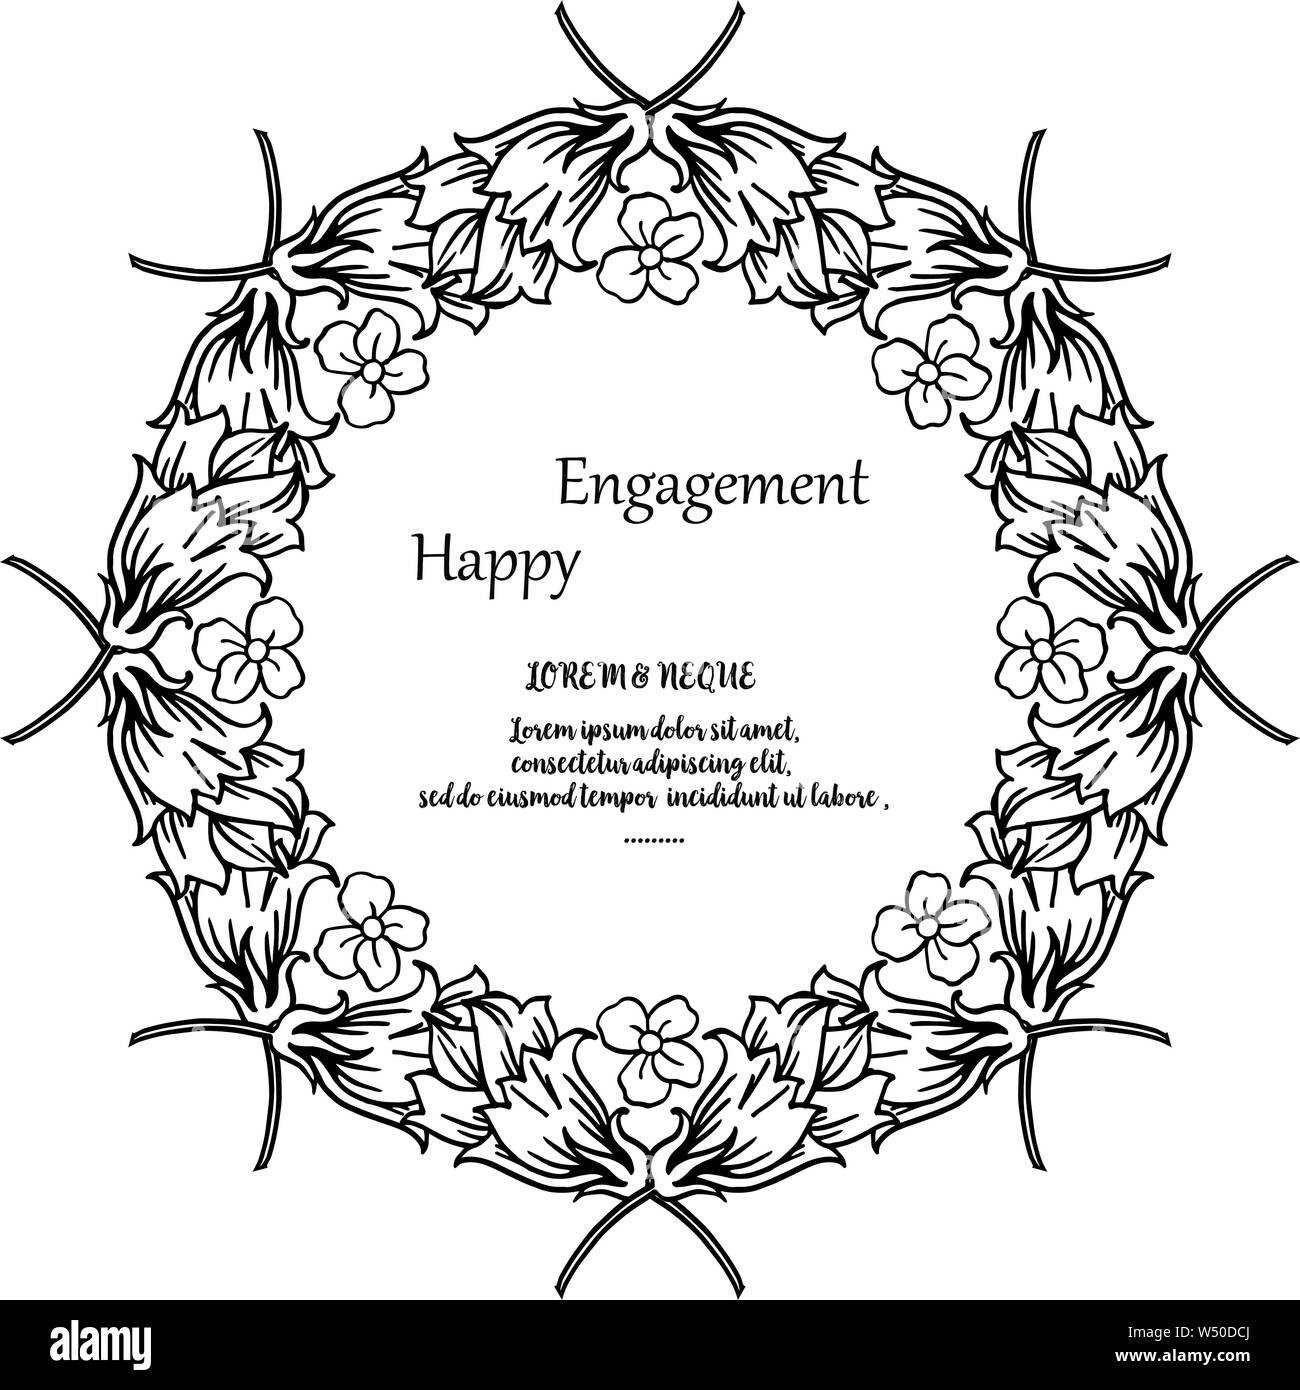 Card Happy Engagement Invitation Card Design Elegant